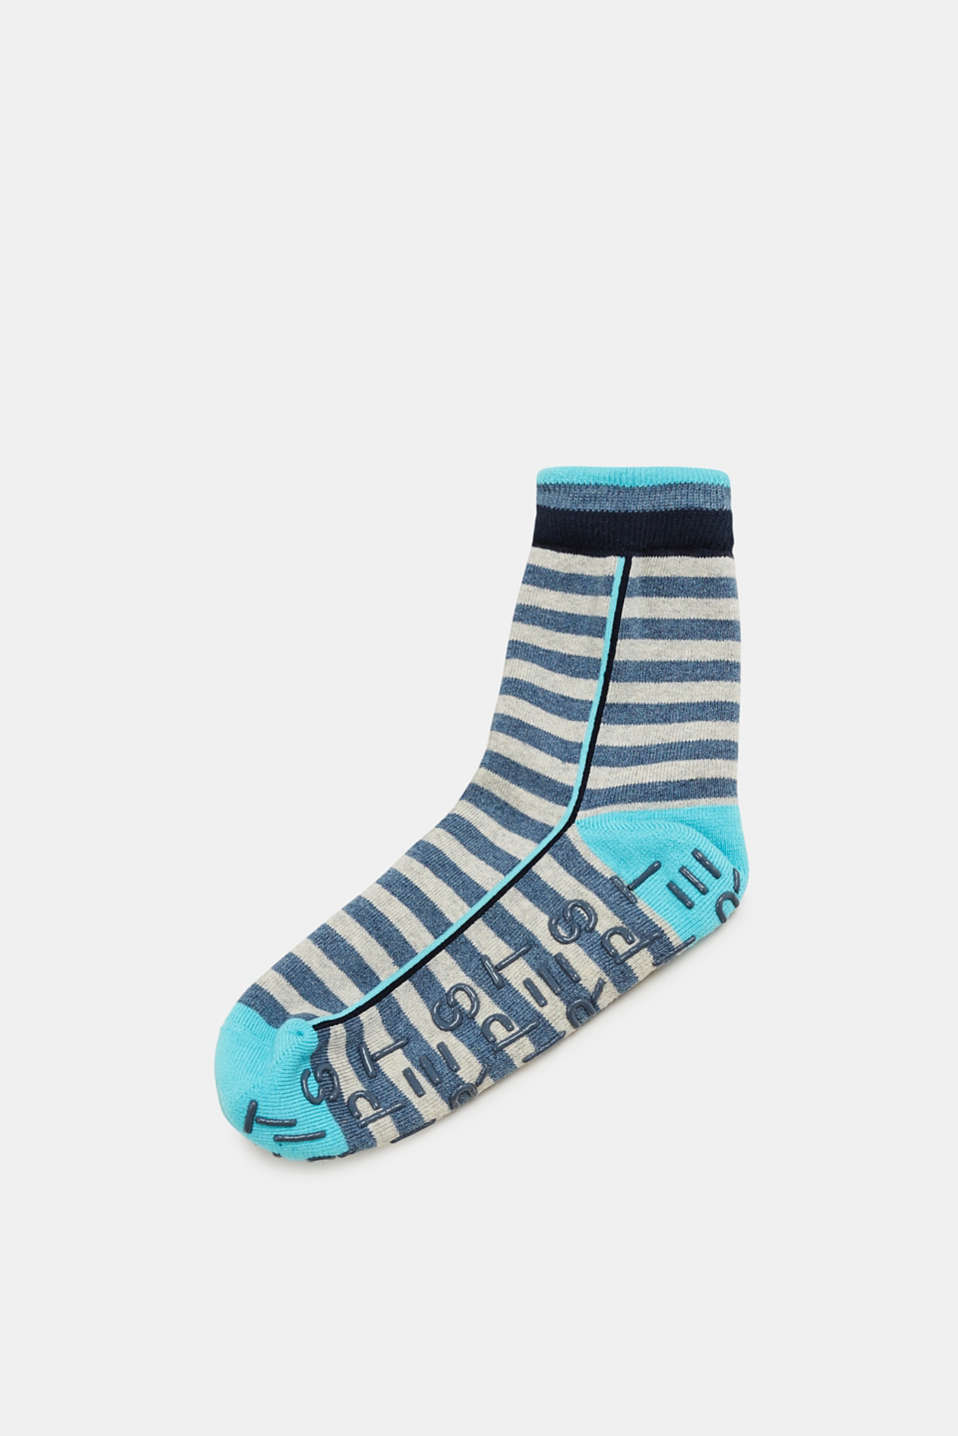 Esprit - Non-slip socks with sporty stripes